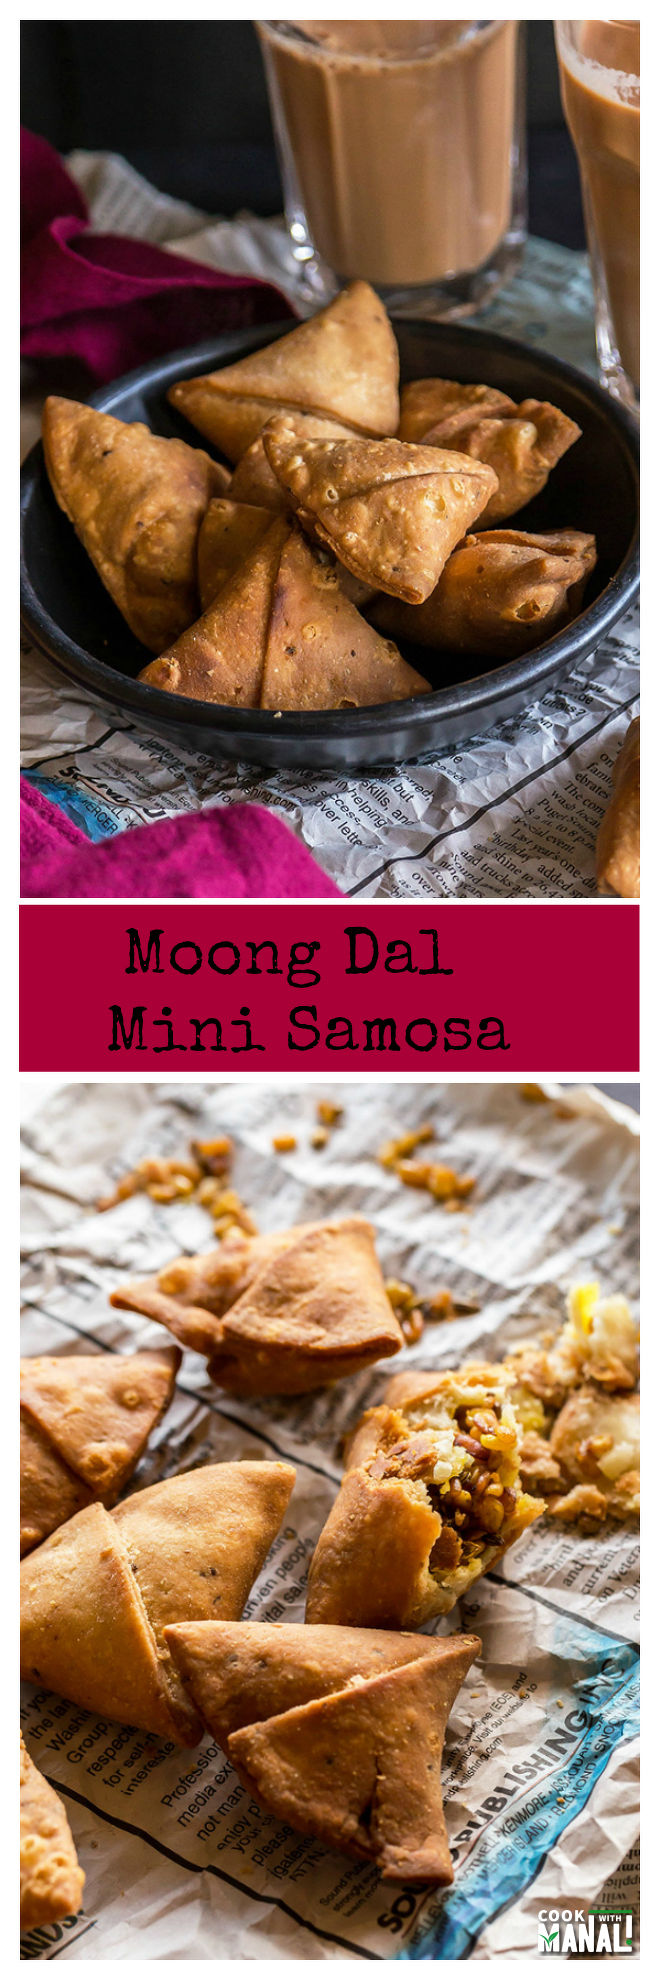 moong-dal-mini-samosa-collage